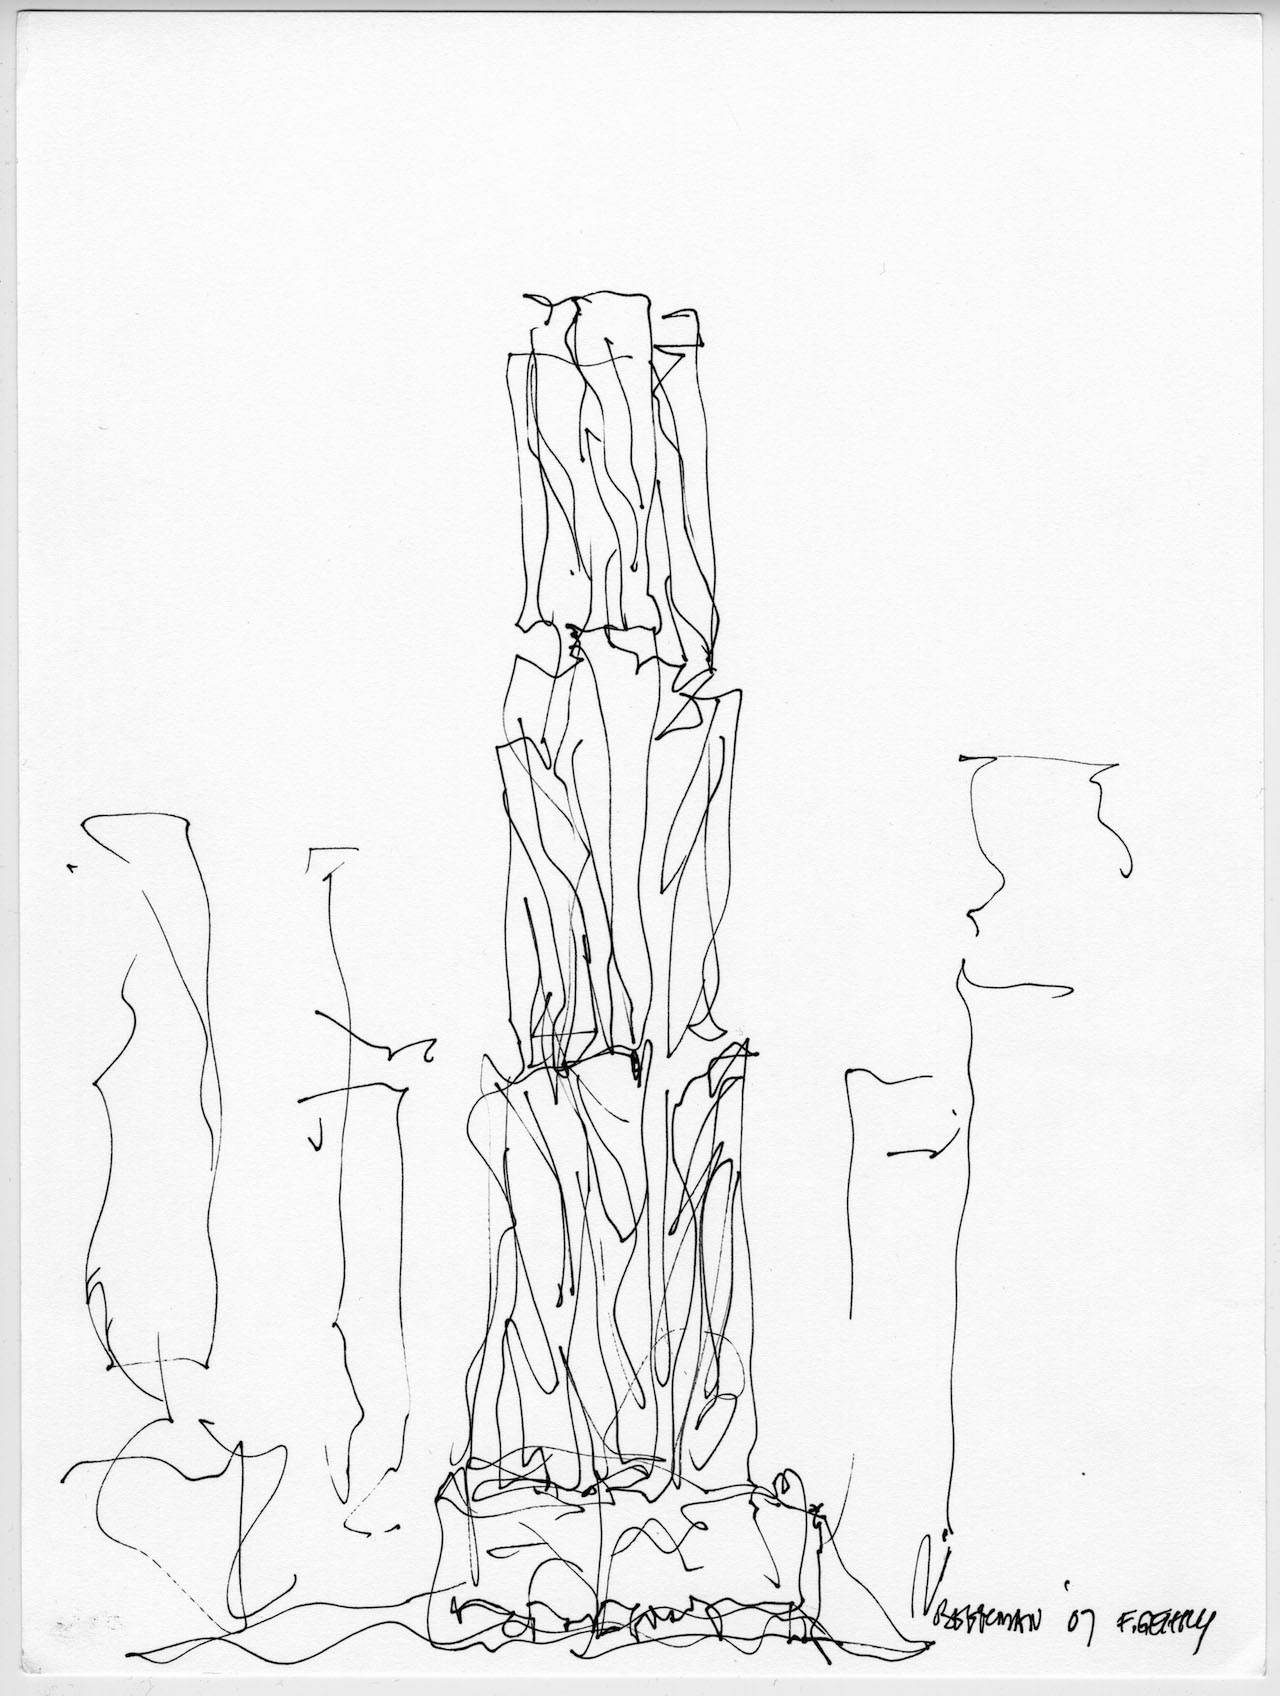 Frank Gehry, 8 Spruce Street Design, sketch and volume study, New York, New York (2007) (Collection Frank Gehry, Los Angeles ©2015 Gehry Partners, LLP, image courtesy Gehry Partners)